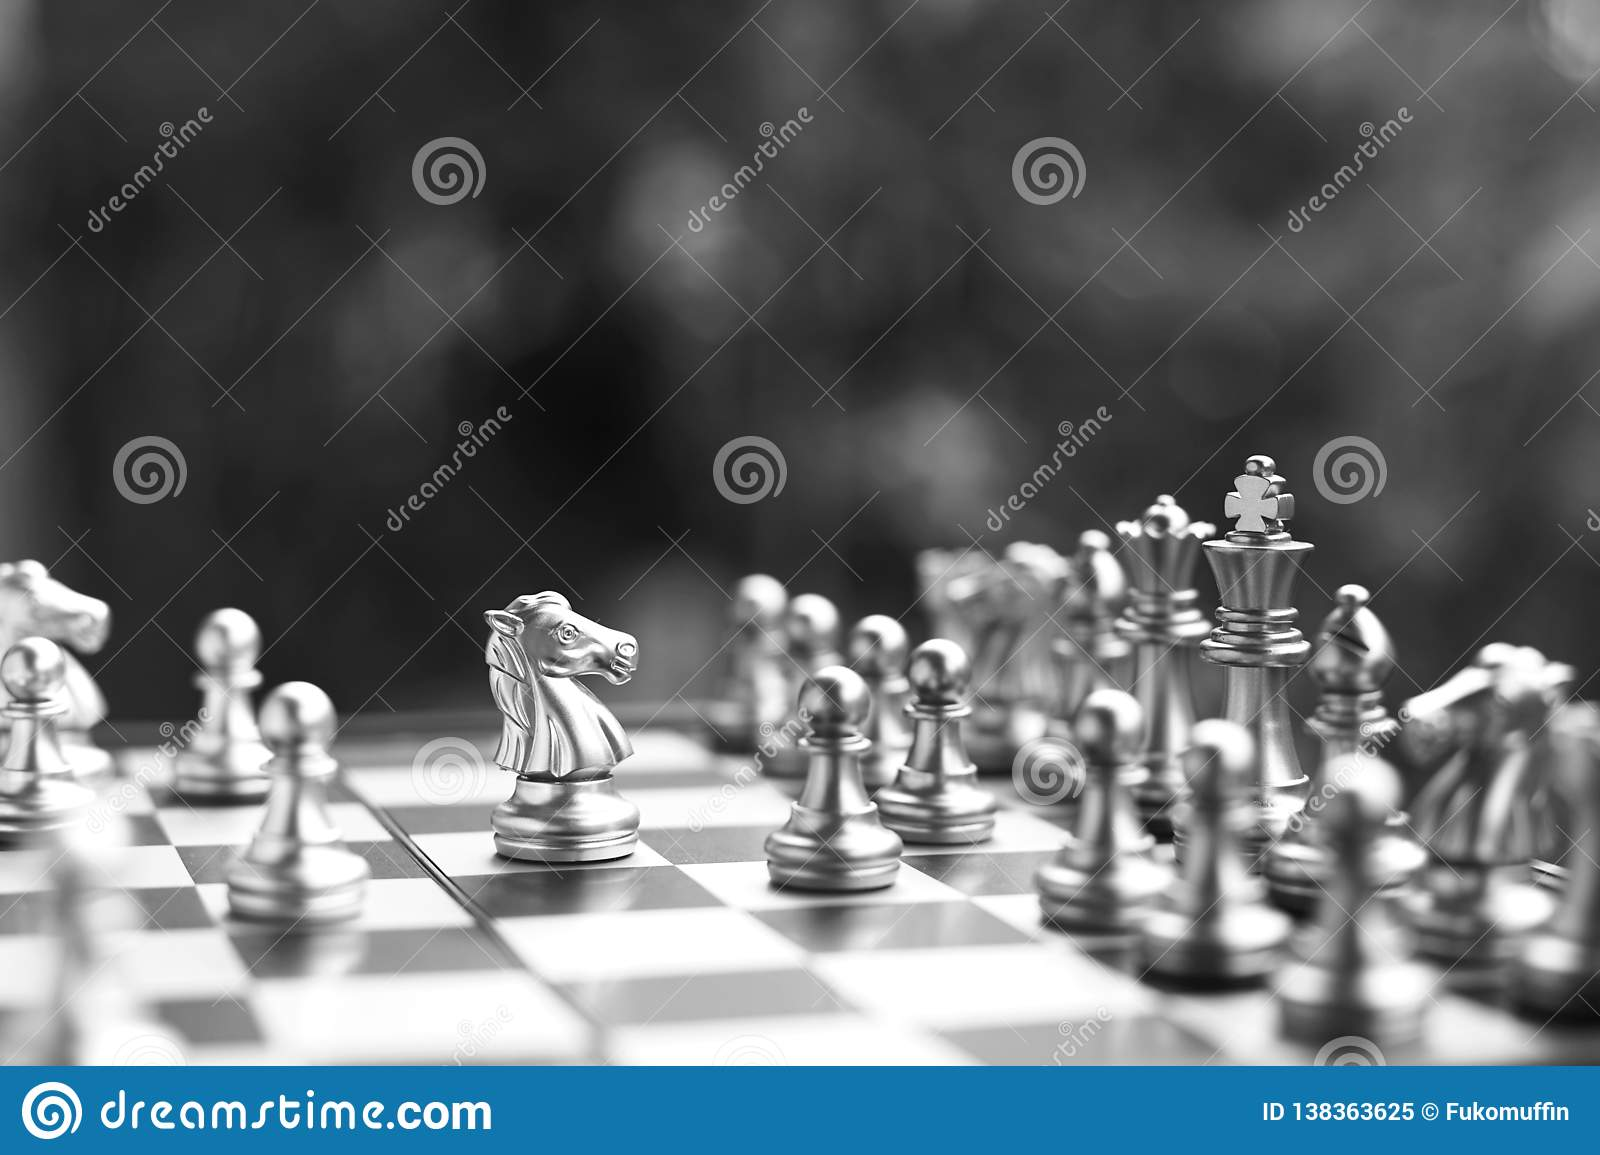 Chess board game. Fighting in black and white. Business competitive and strategy planning concept